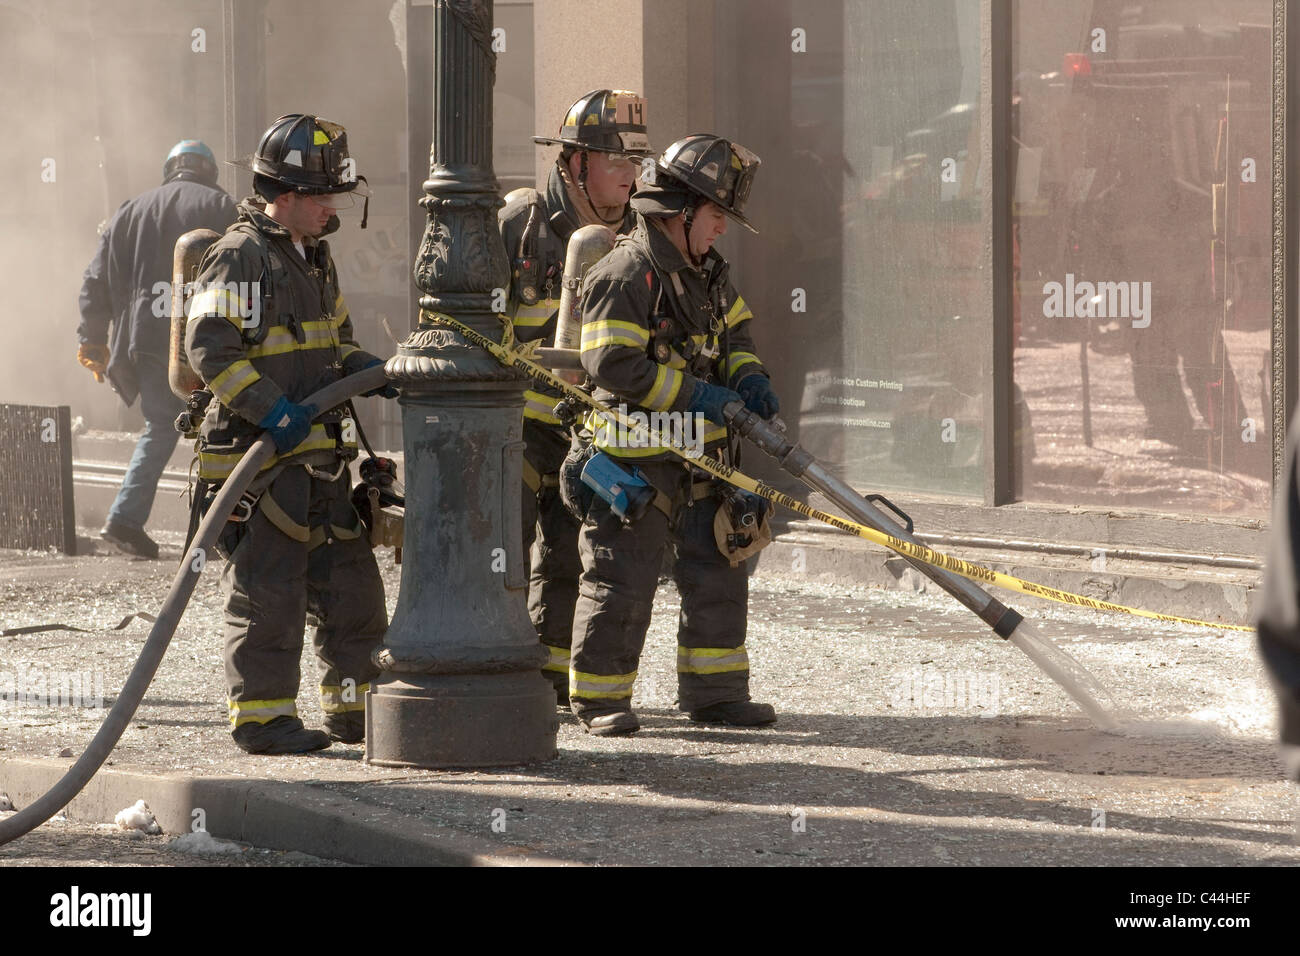 Emergency services attend the scene of an explosion in a building at 20'th street in New York City. - Stock Image